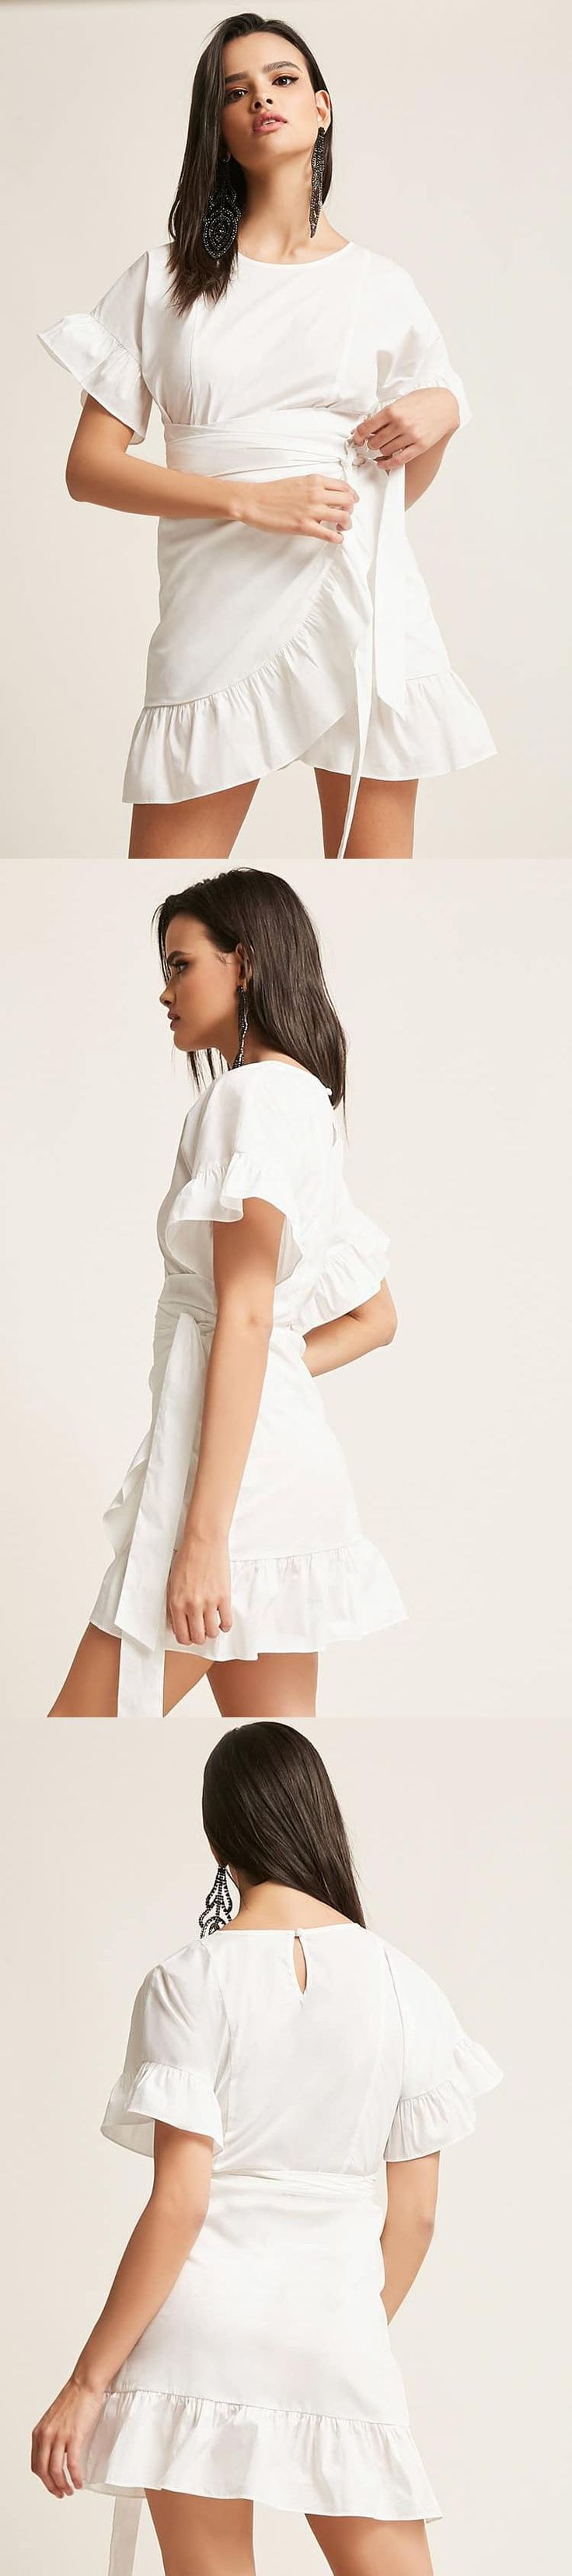 Ruffle Wrap-Front Dress // 38.00 USD // Forever 21